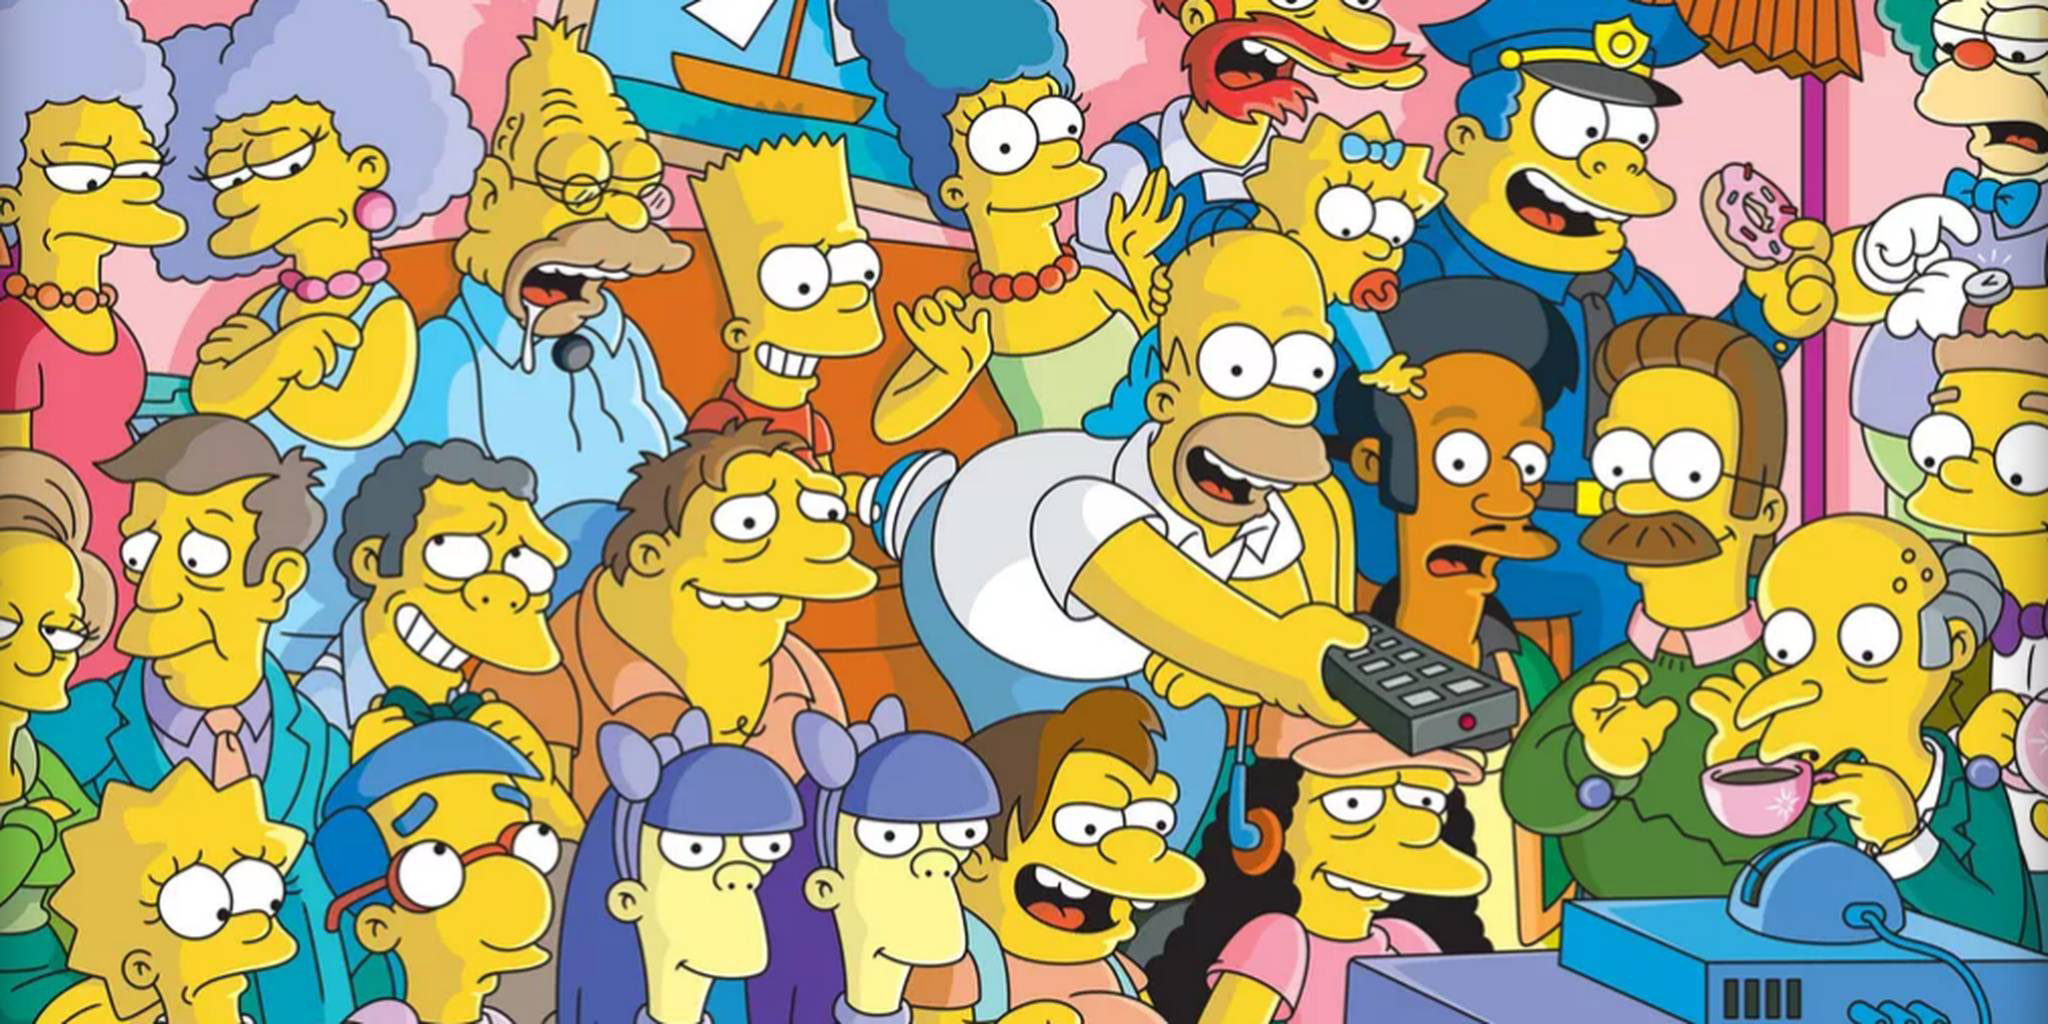 Simpsons group shot